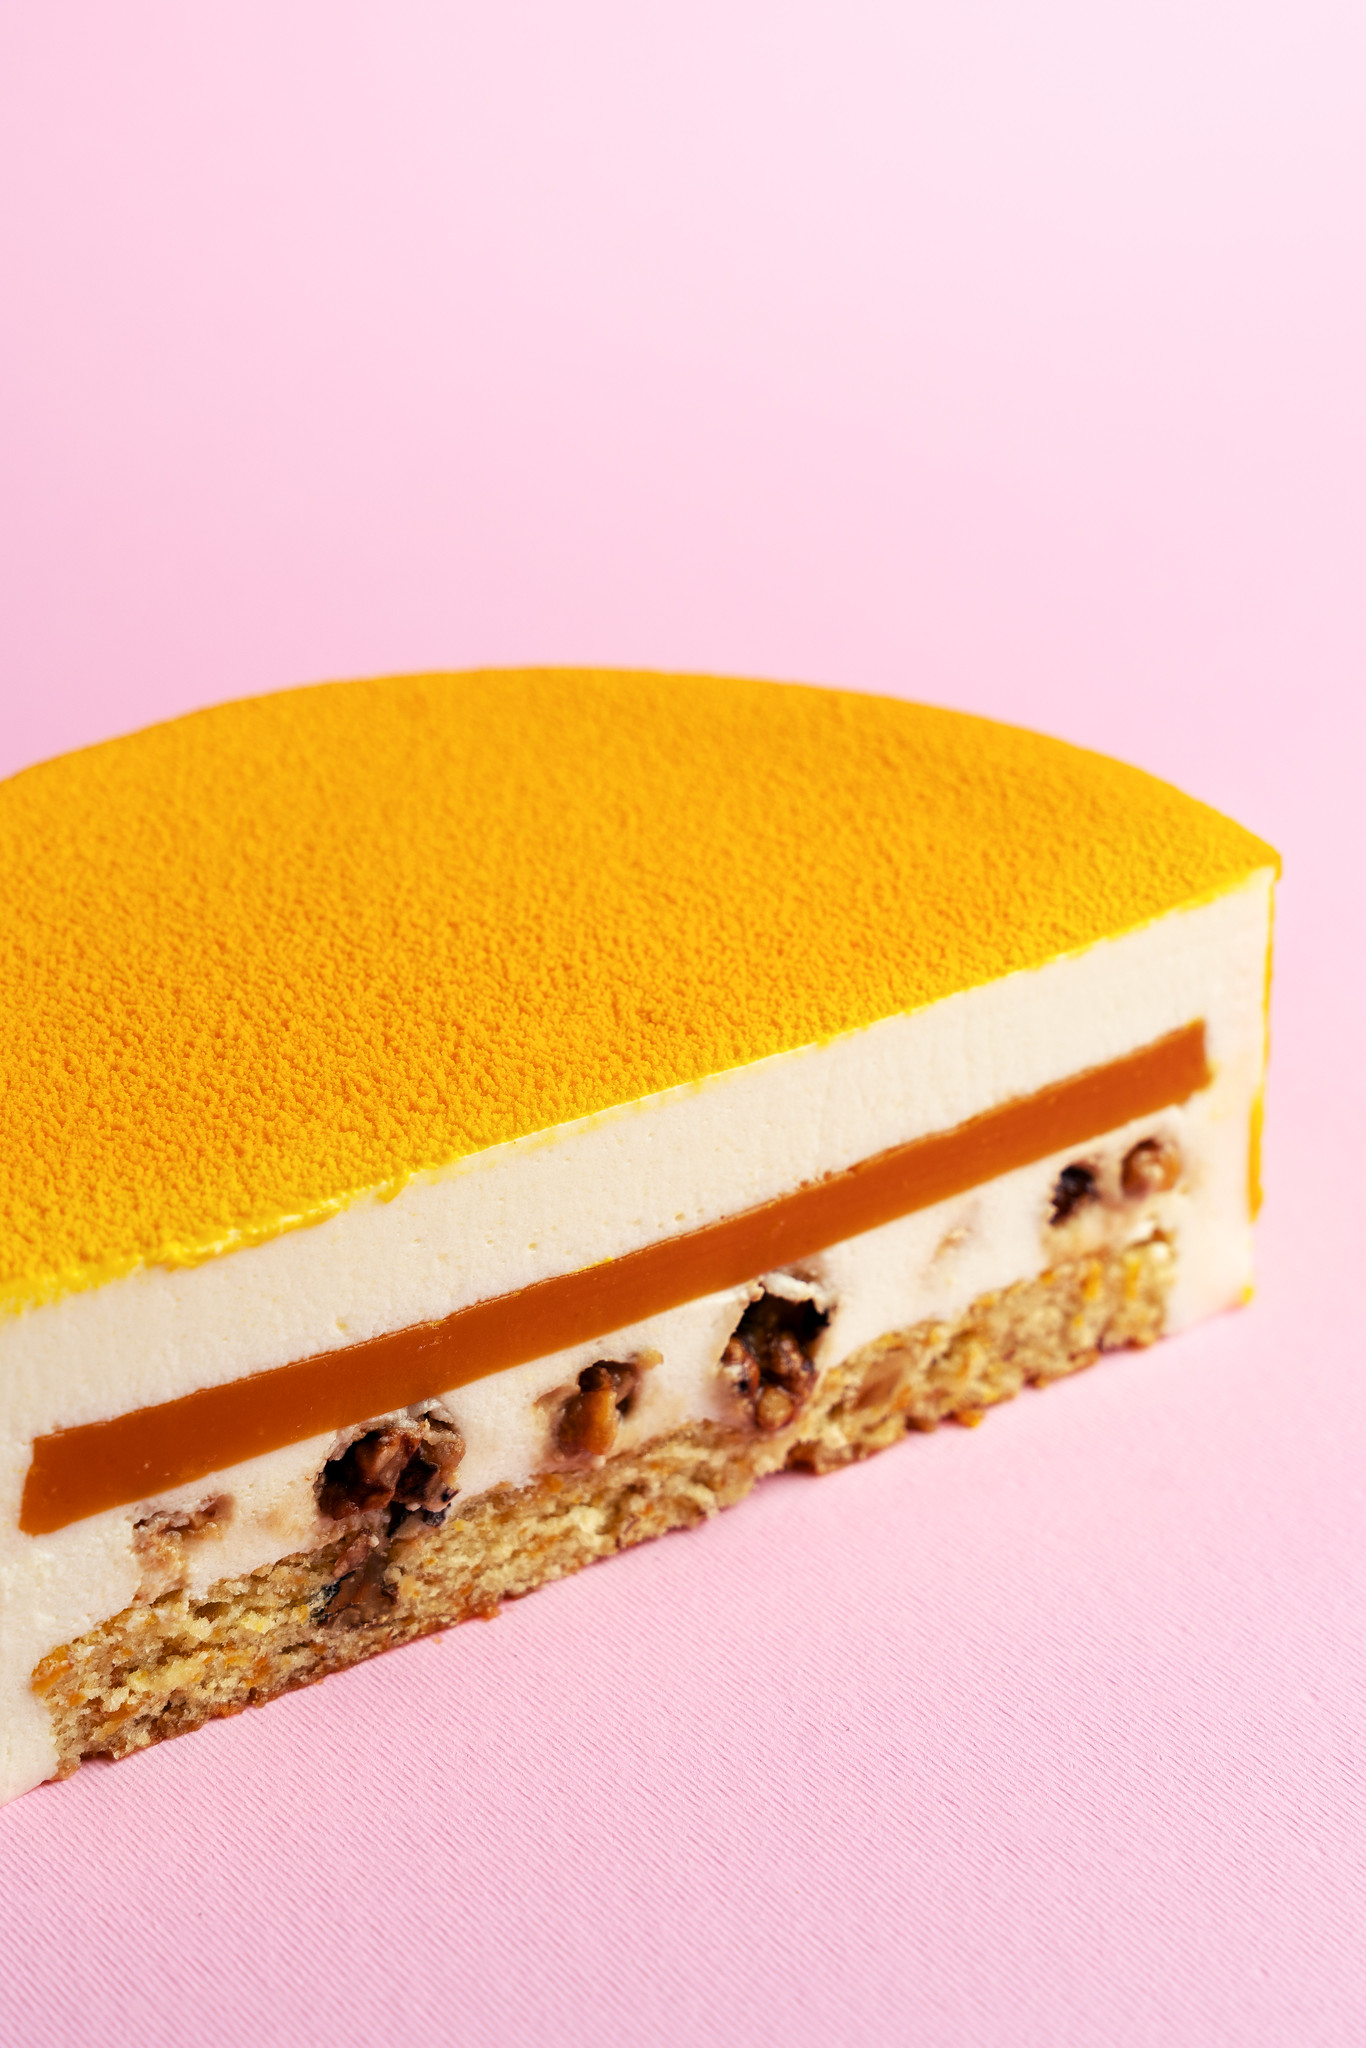 dessert with filling